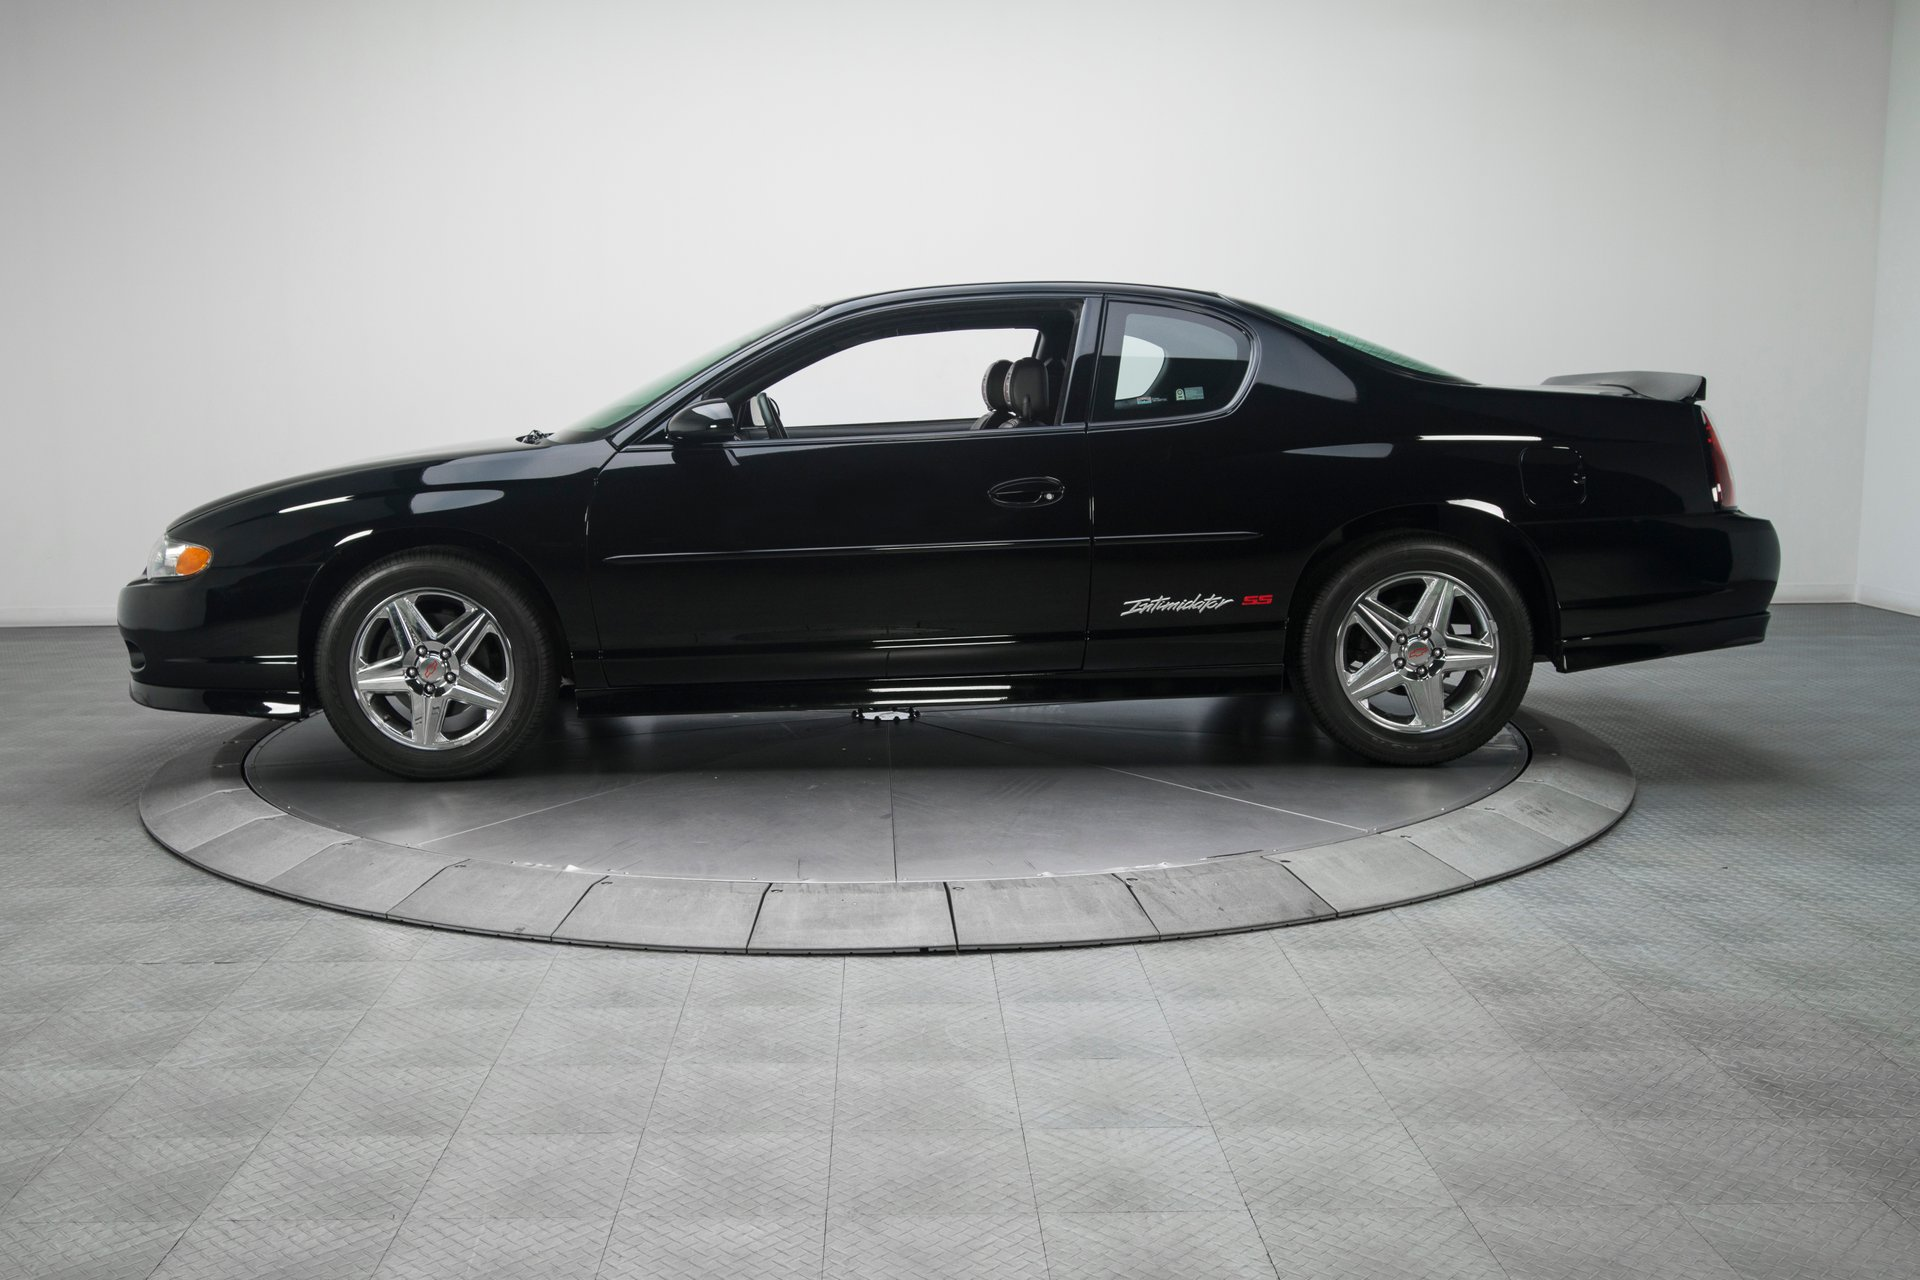 hight resolution of  for sale 2004 chevrolet monte carlo